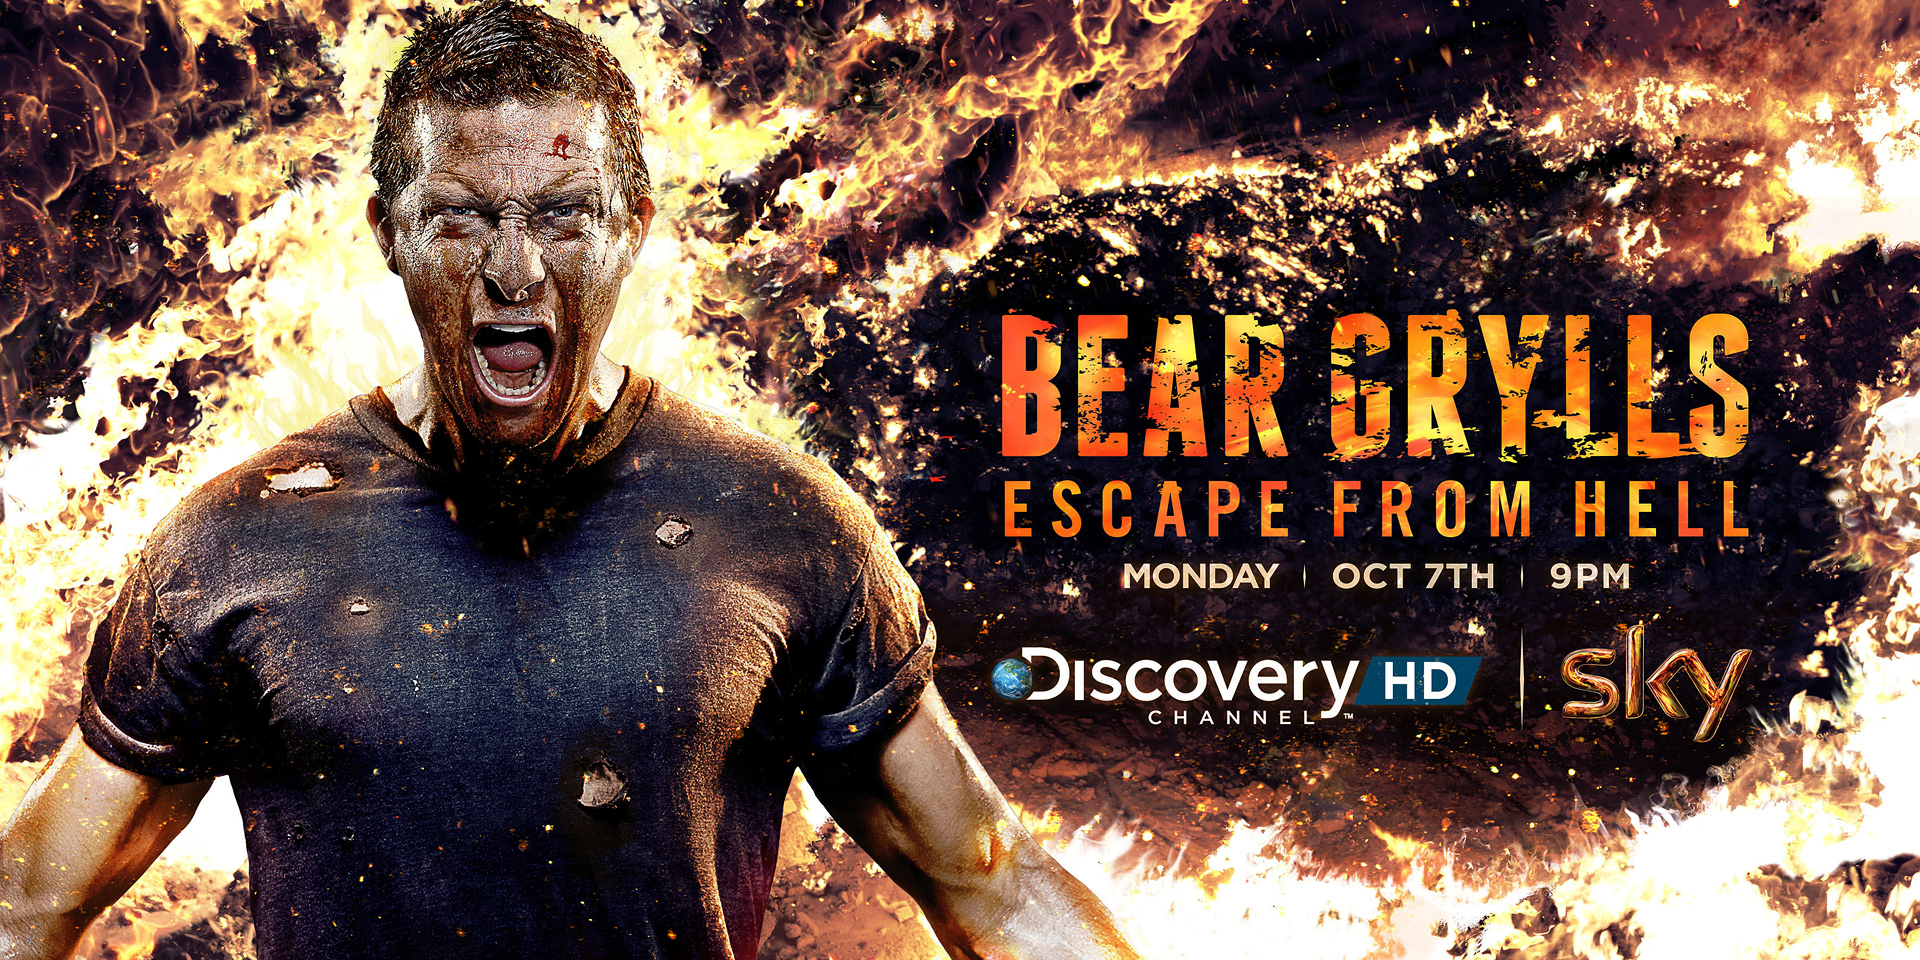 arc_Discovery_beargrylls